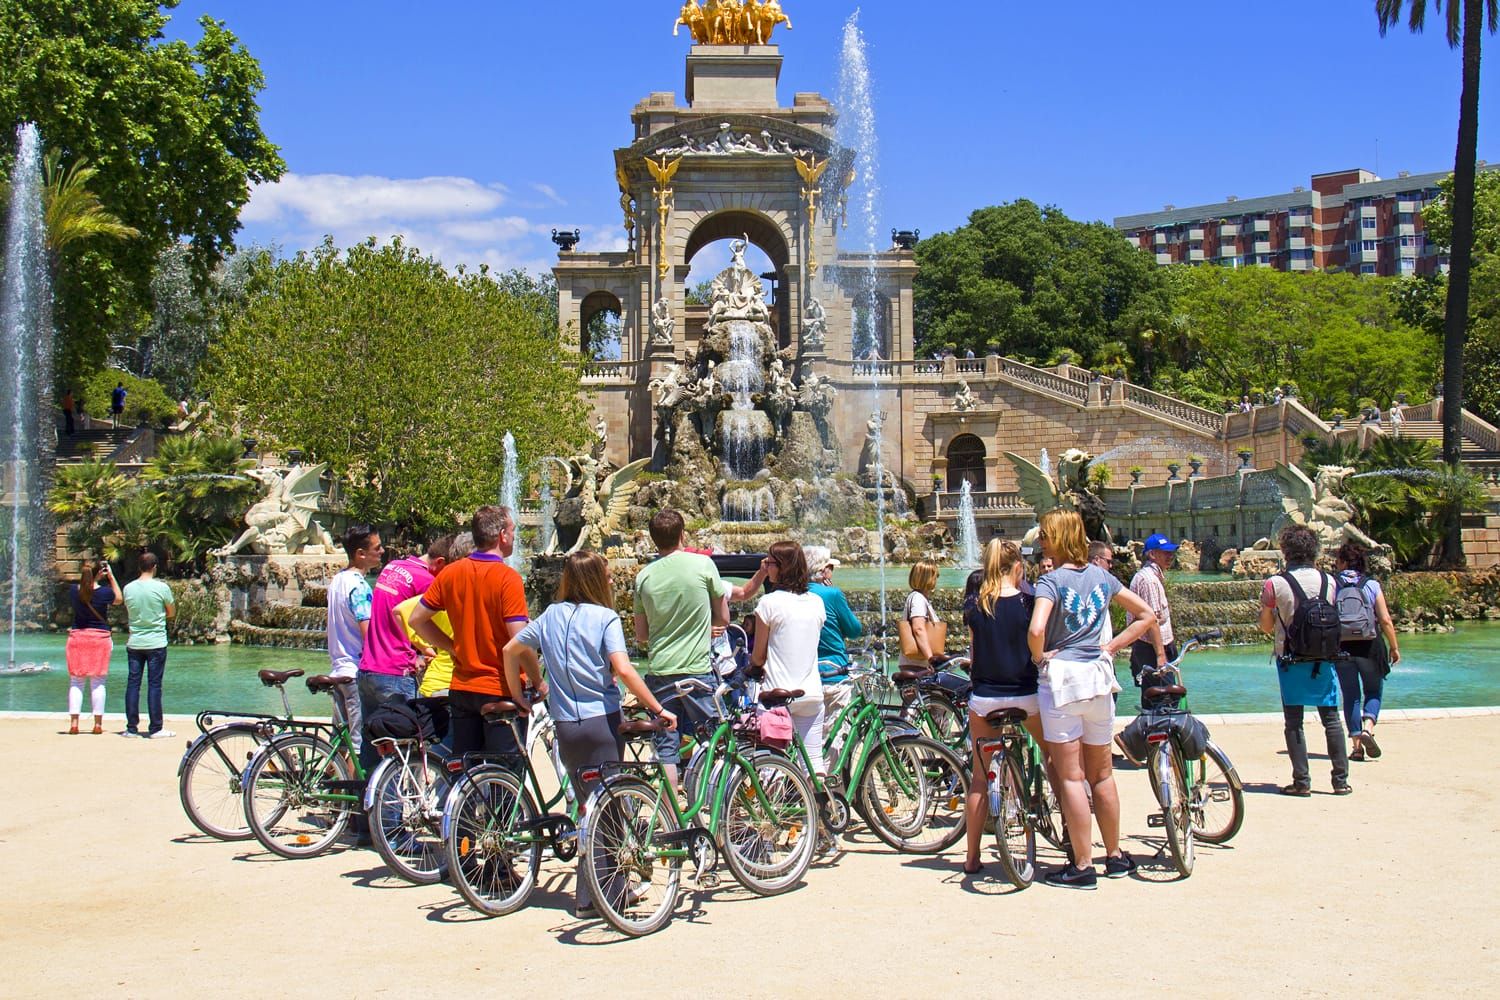 Tourist group on bicycles at the fountain in the Ciutadella Park in Barcelona, Spain